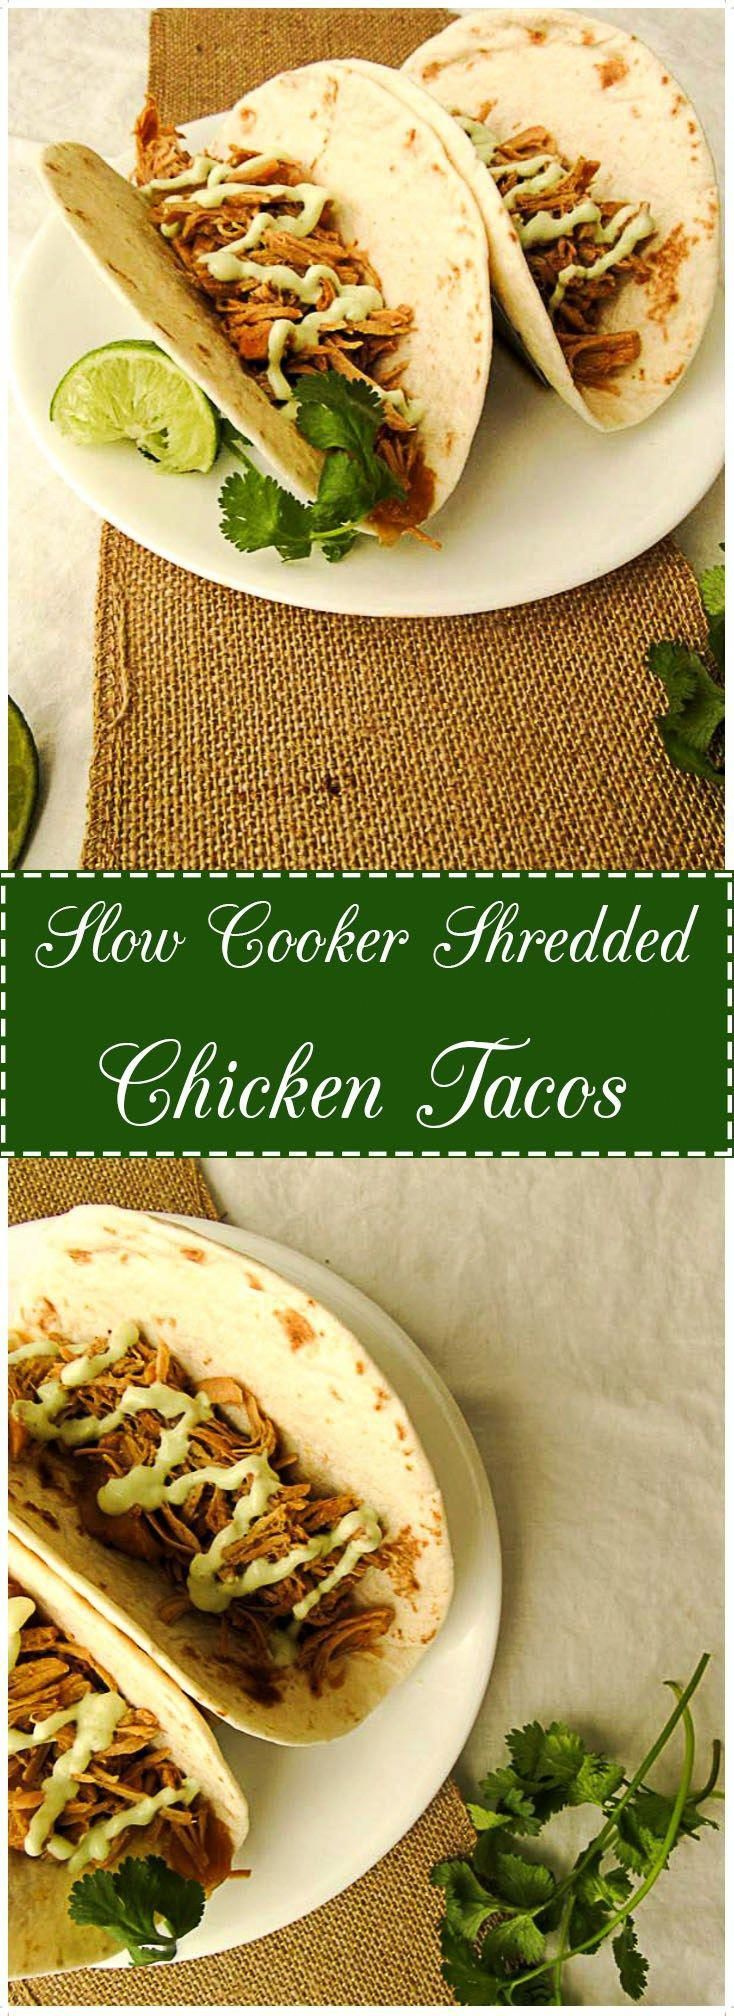 Enjoy a low-fuss meal with these Slow Cooker Shredded Chicken Tacos. They are super juicy, tender and packed with flavor. #healthycrockpotrecipes #shreddedchickentacos Enjoy a low-fuss meal with these Slow Cooker Shredded Chicken Tacos. They are super juicy, tender and packed with flavor. #healthycrockpotrecipes #shreddedchickentacos